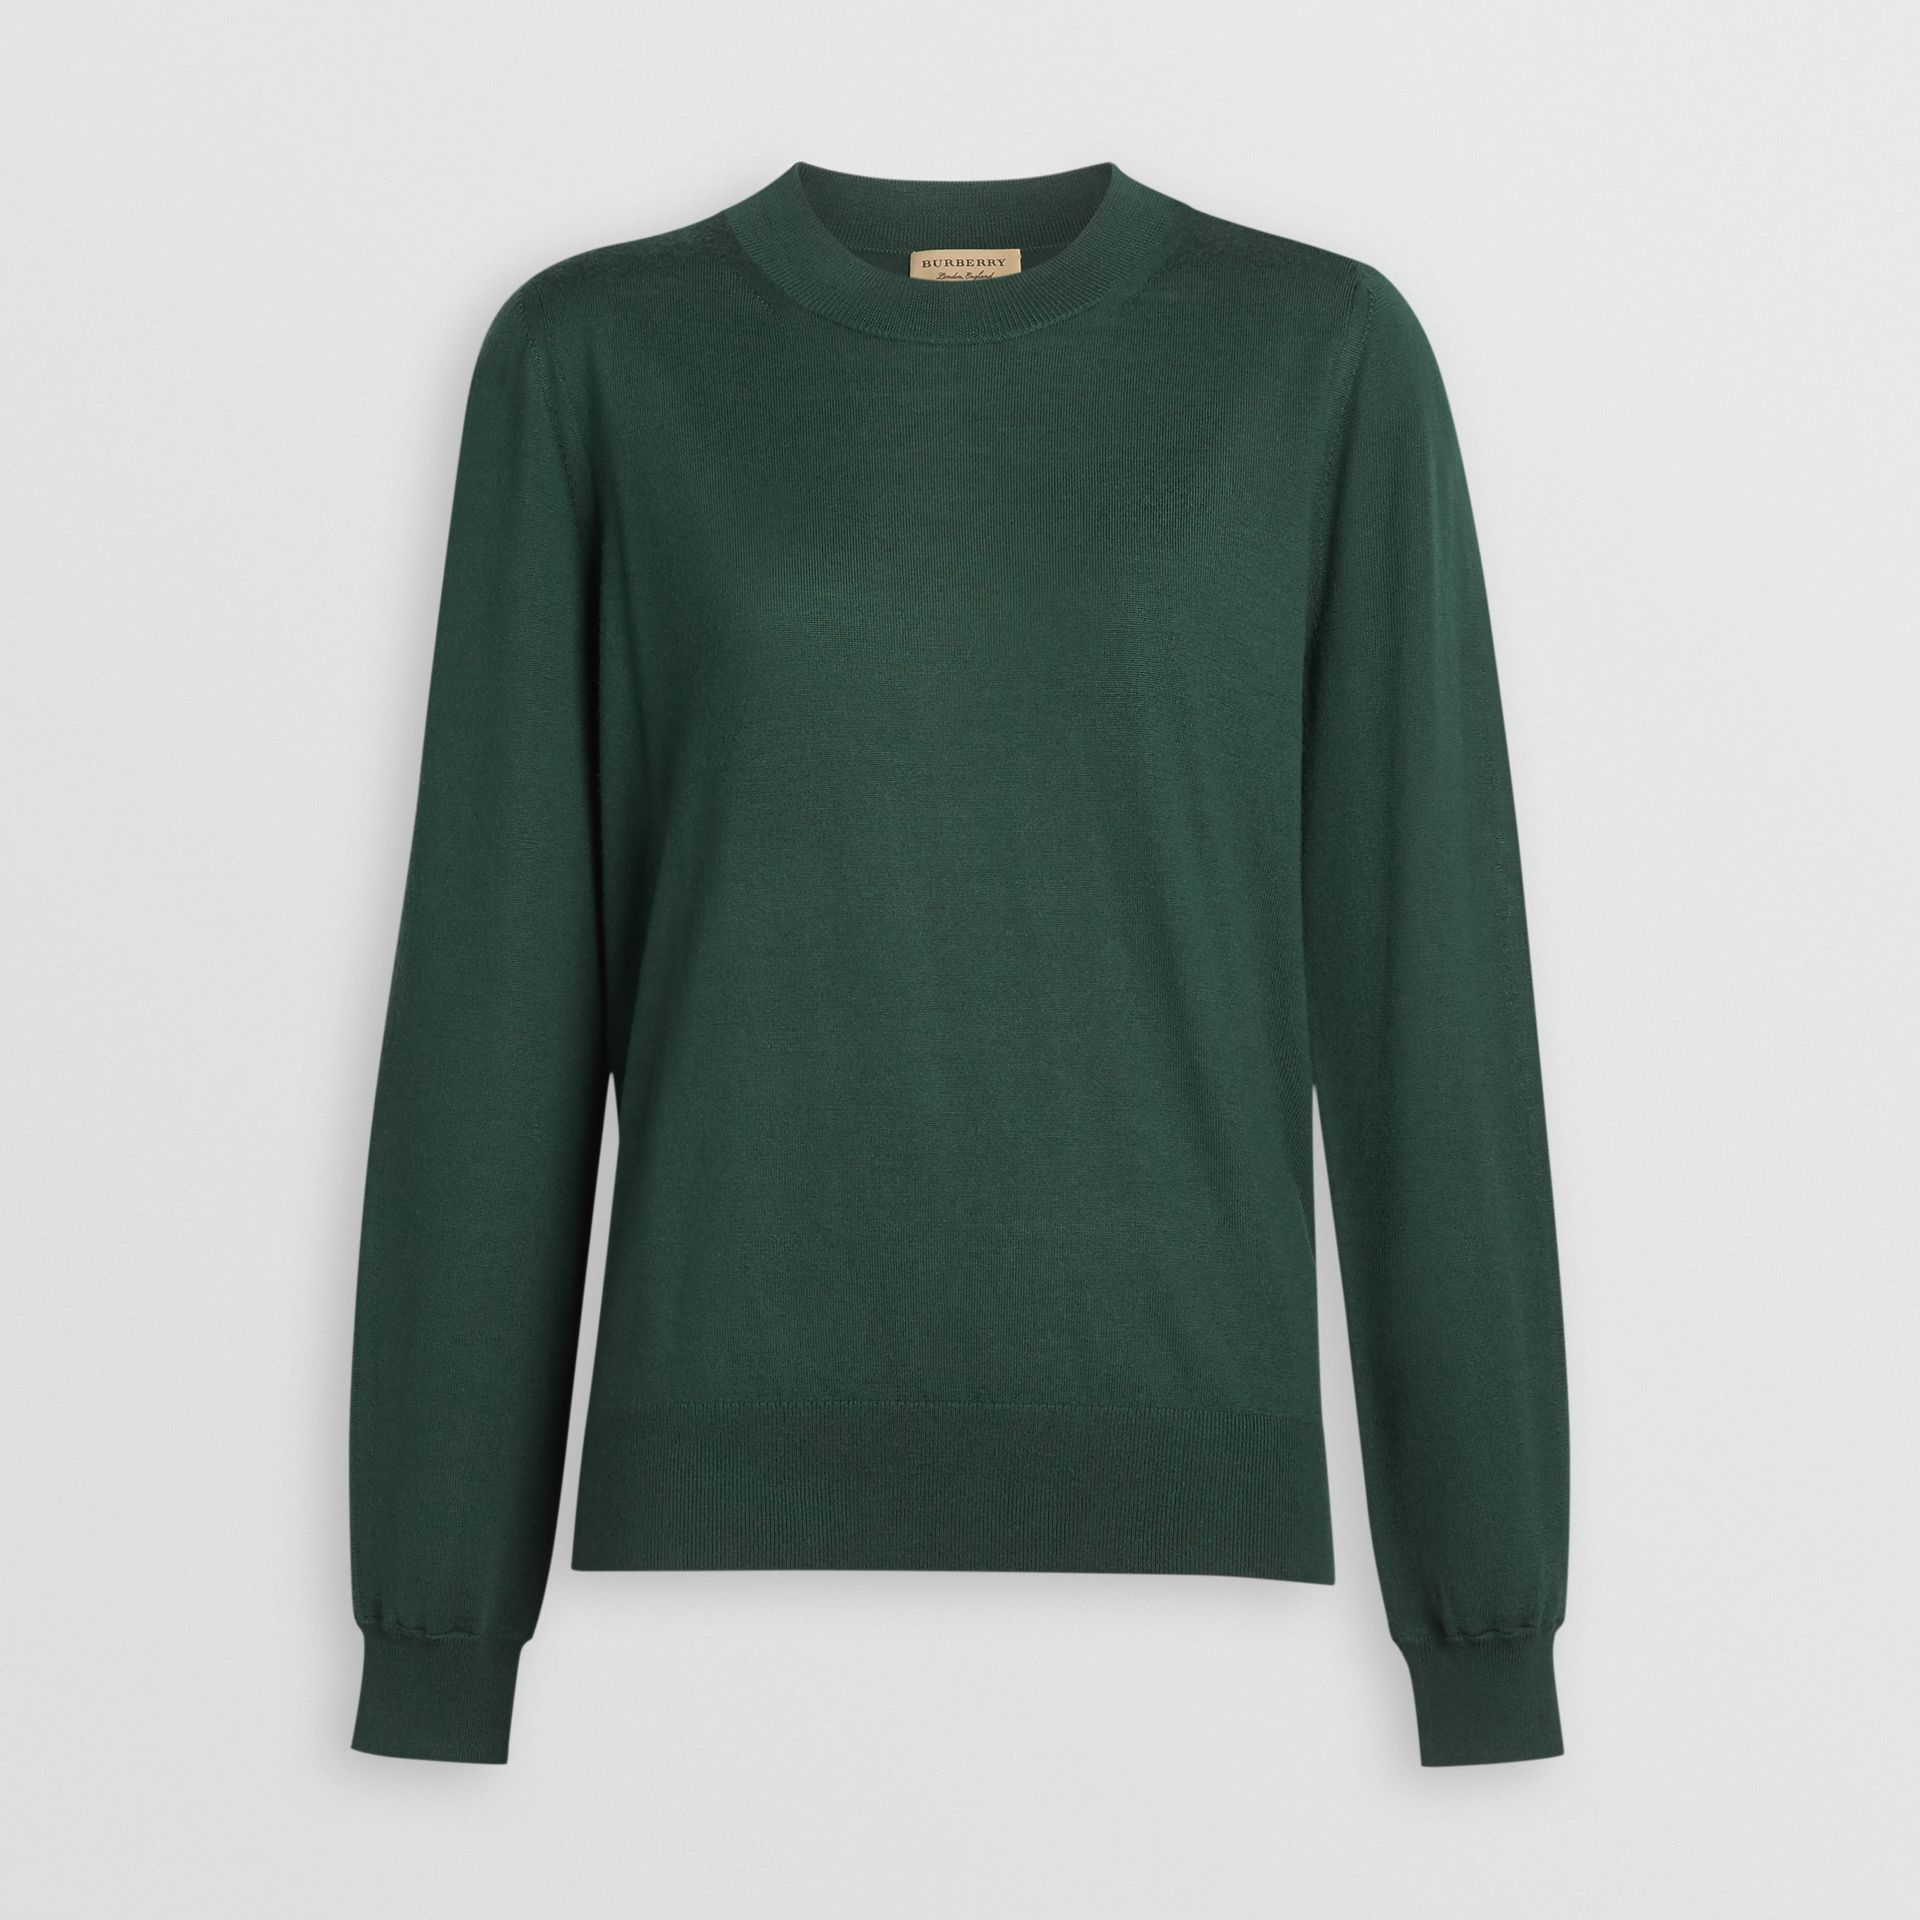 Merino Wool Crew Neck Sweater in Dark Forest Green - Women | Burberry - gallery image 3